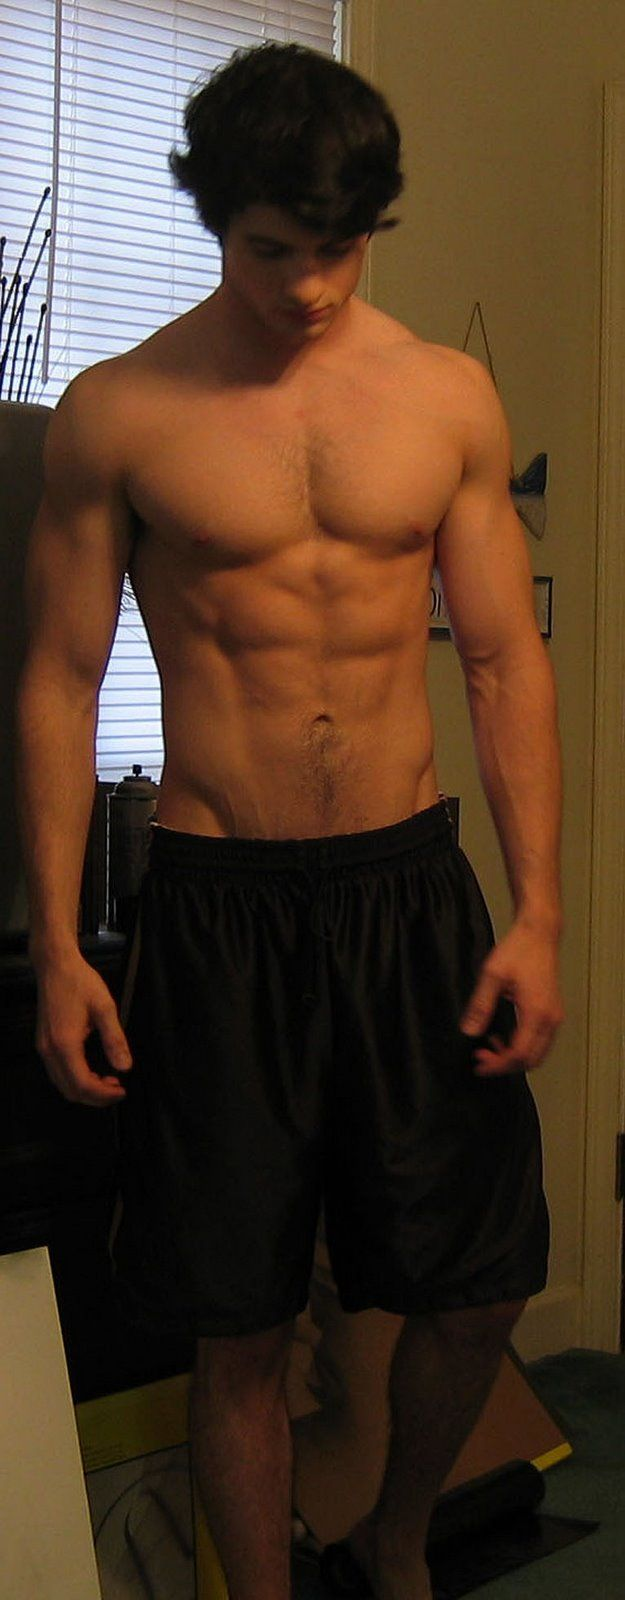 Hot Shirtless Bro Boy Next Door Jeg elsker denne fyr slik-6285